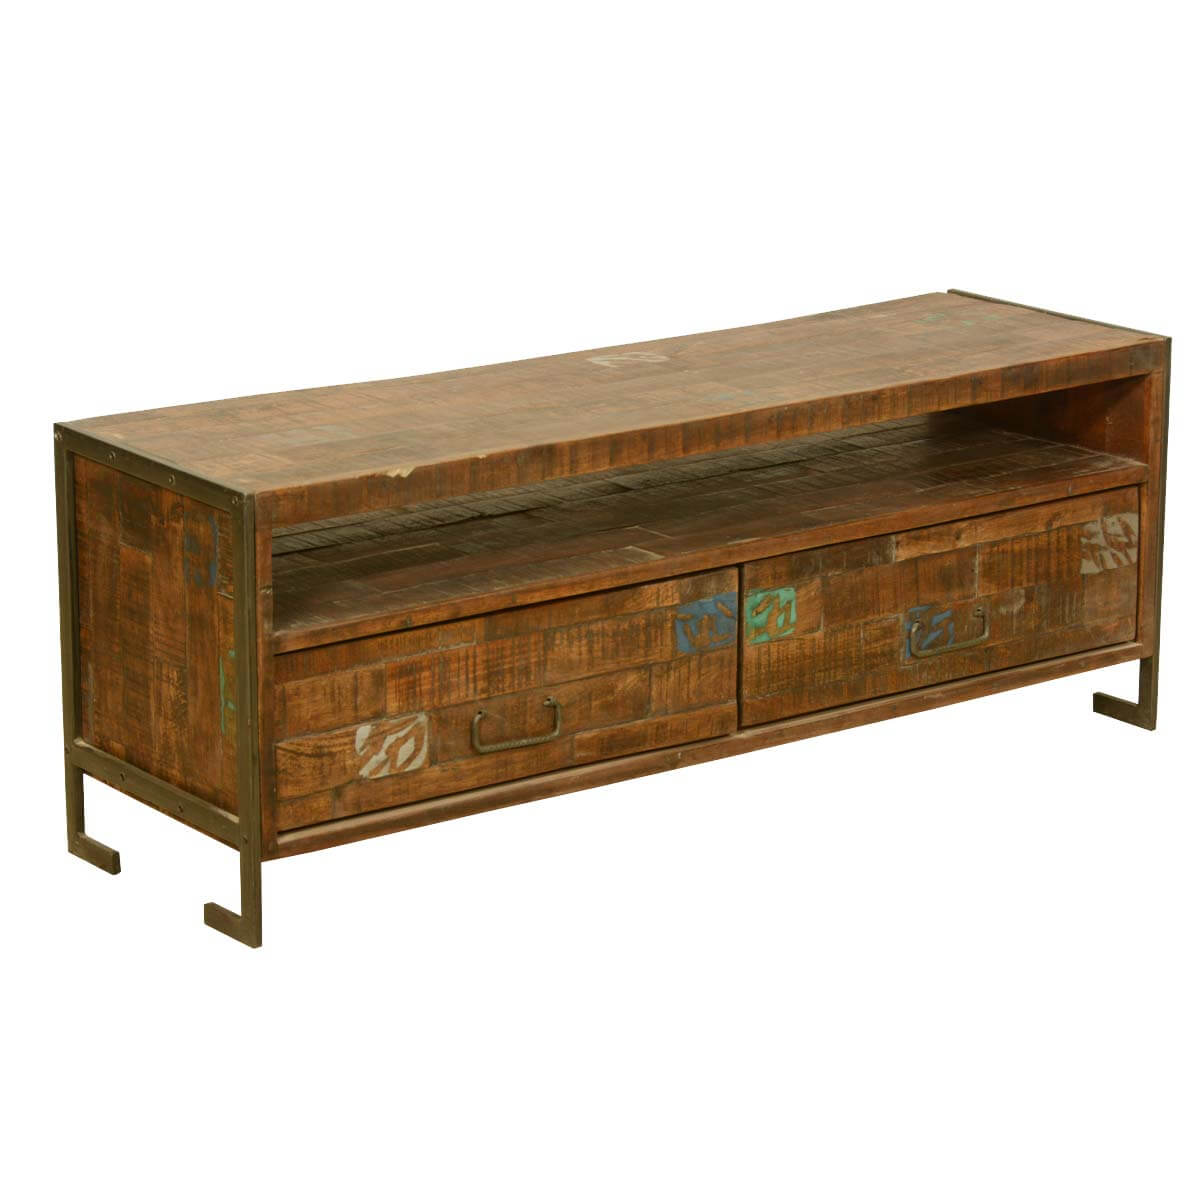 "52"" Reclaimed Wood Industrial Rustic Media Console TV Stand"